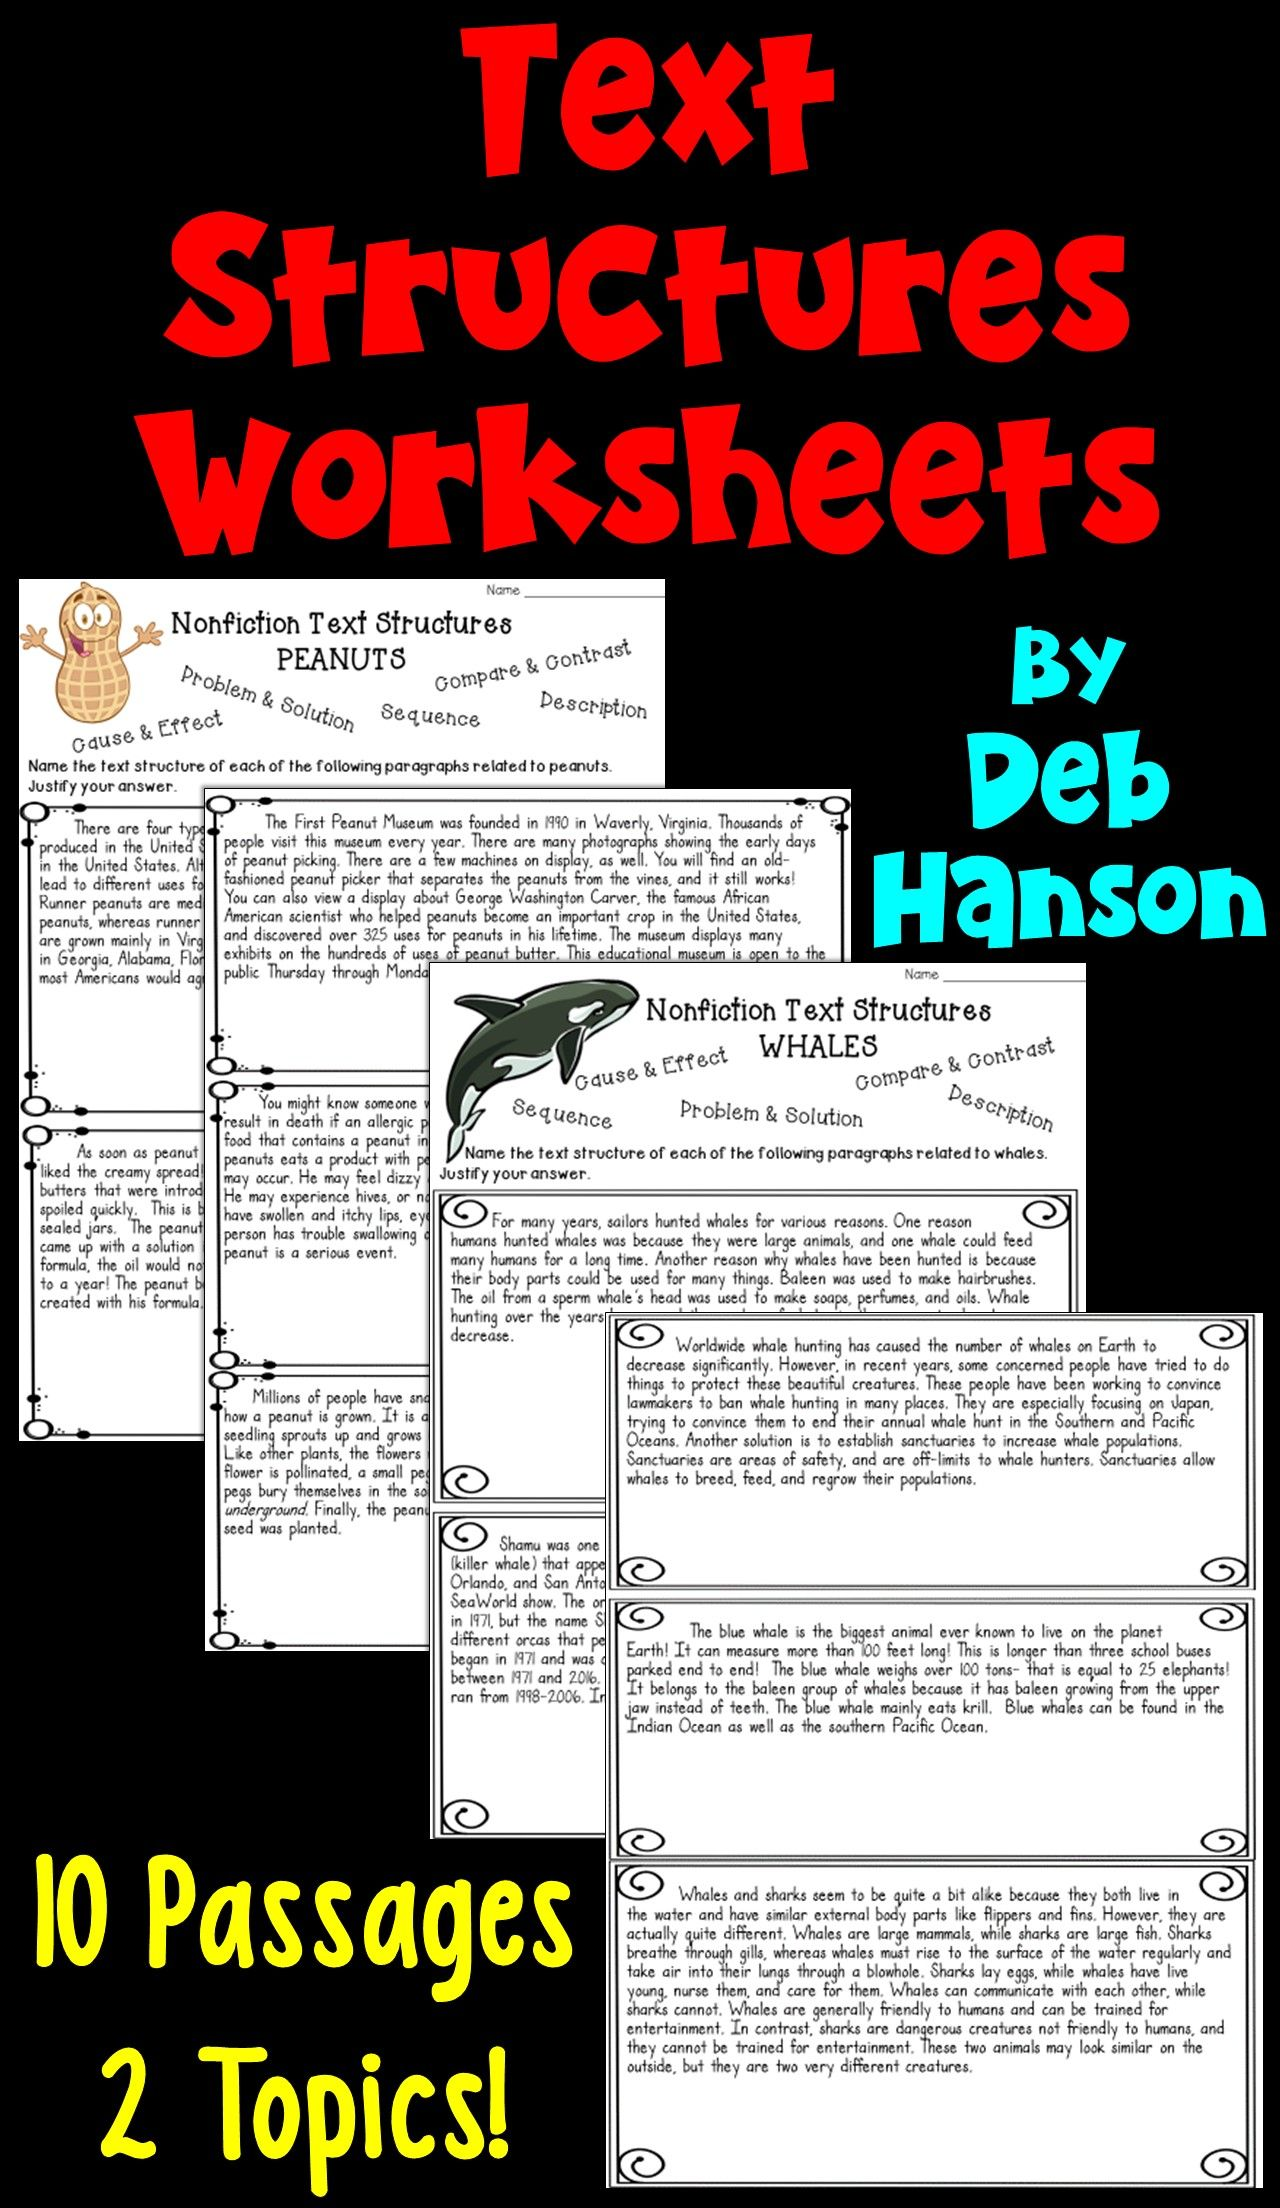 Informational Text Structures Two Worksheets